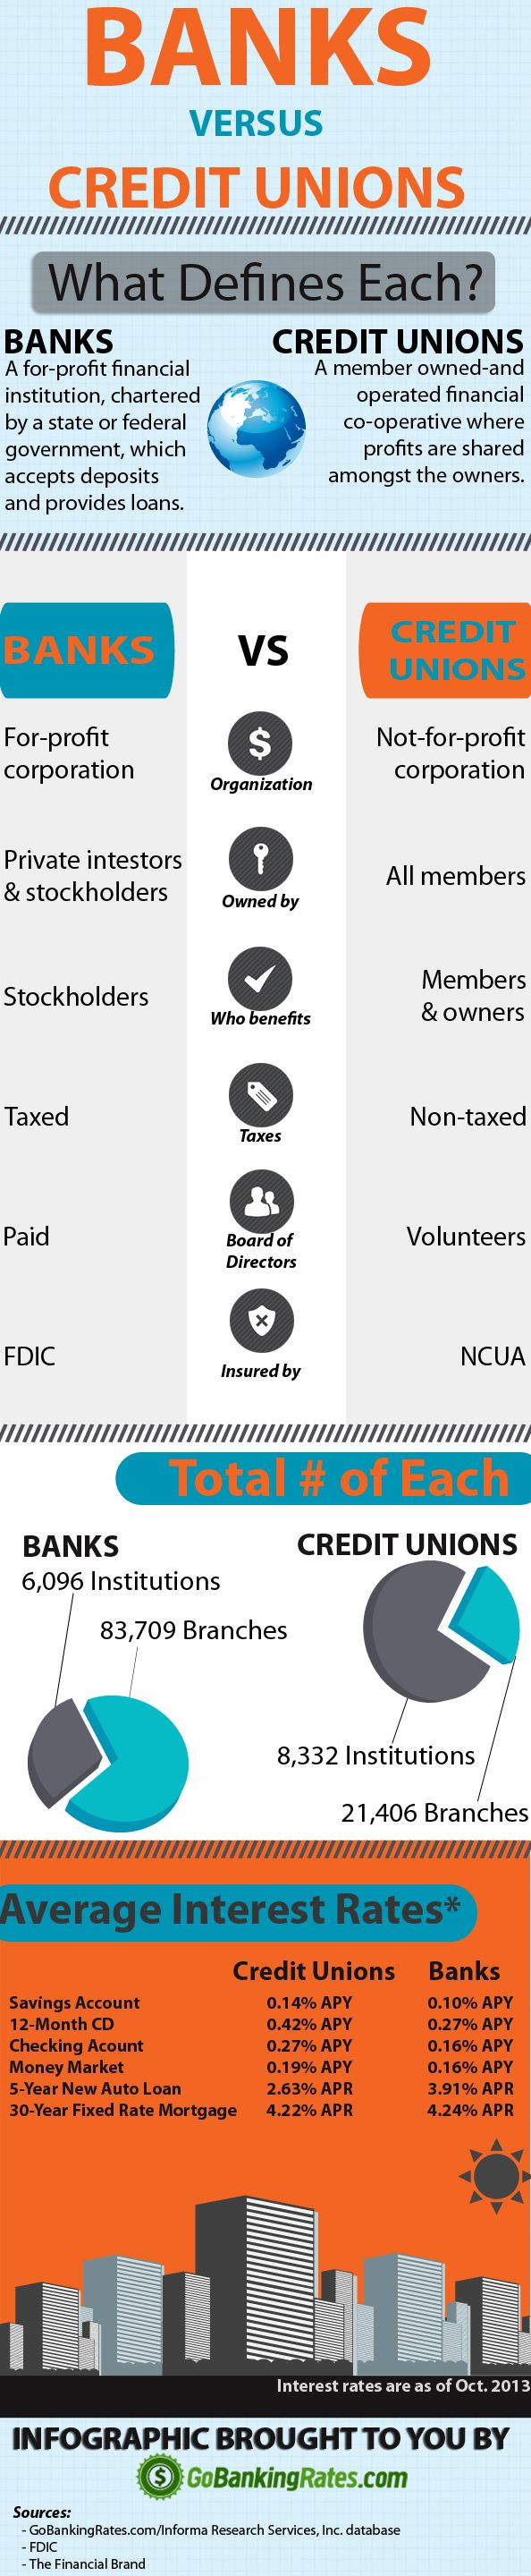 credit unions vs banks australia Types four types of banks specialize in offering these basic banking services: 1) commercial banks, 2) savings and loan associations, 3) savings banks, and 4) credit unions a broader definition of a bank is any financial institution that receives, collects, transfers, pays, exchanges, lends, invests, or safeguards money for its customers.